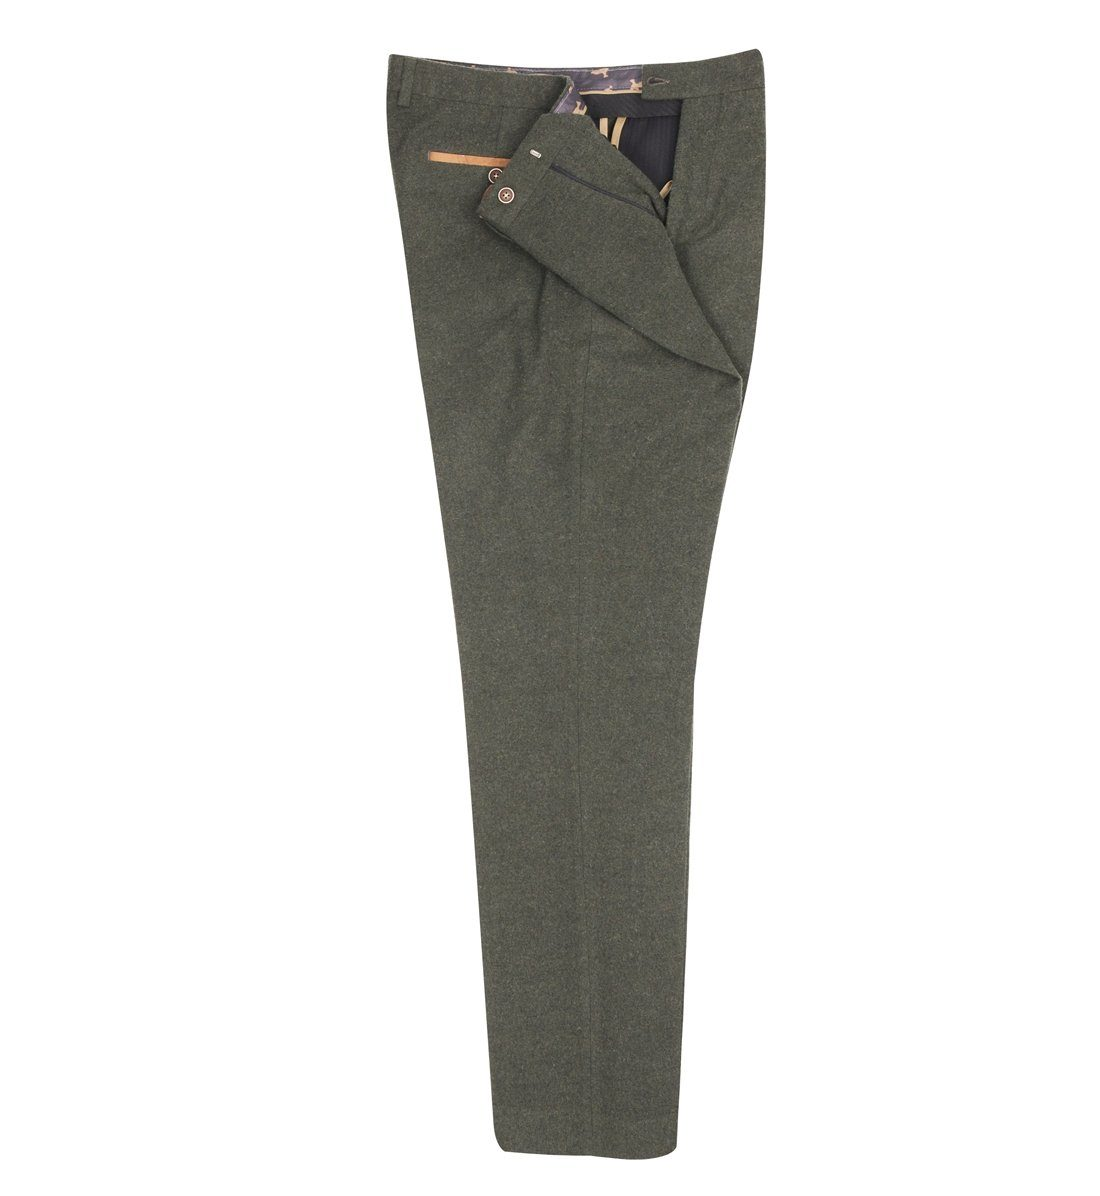 Olive Tweed Suit Trousers - Leonard Silver